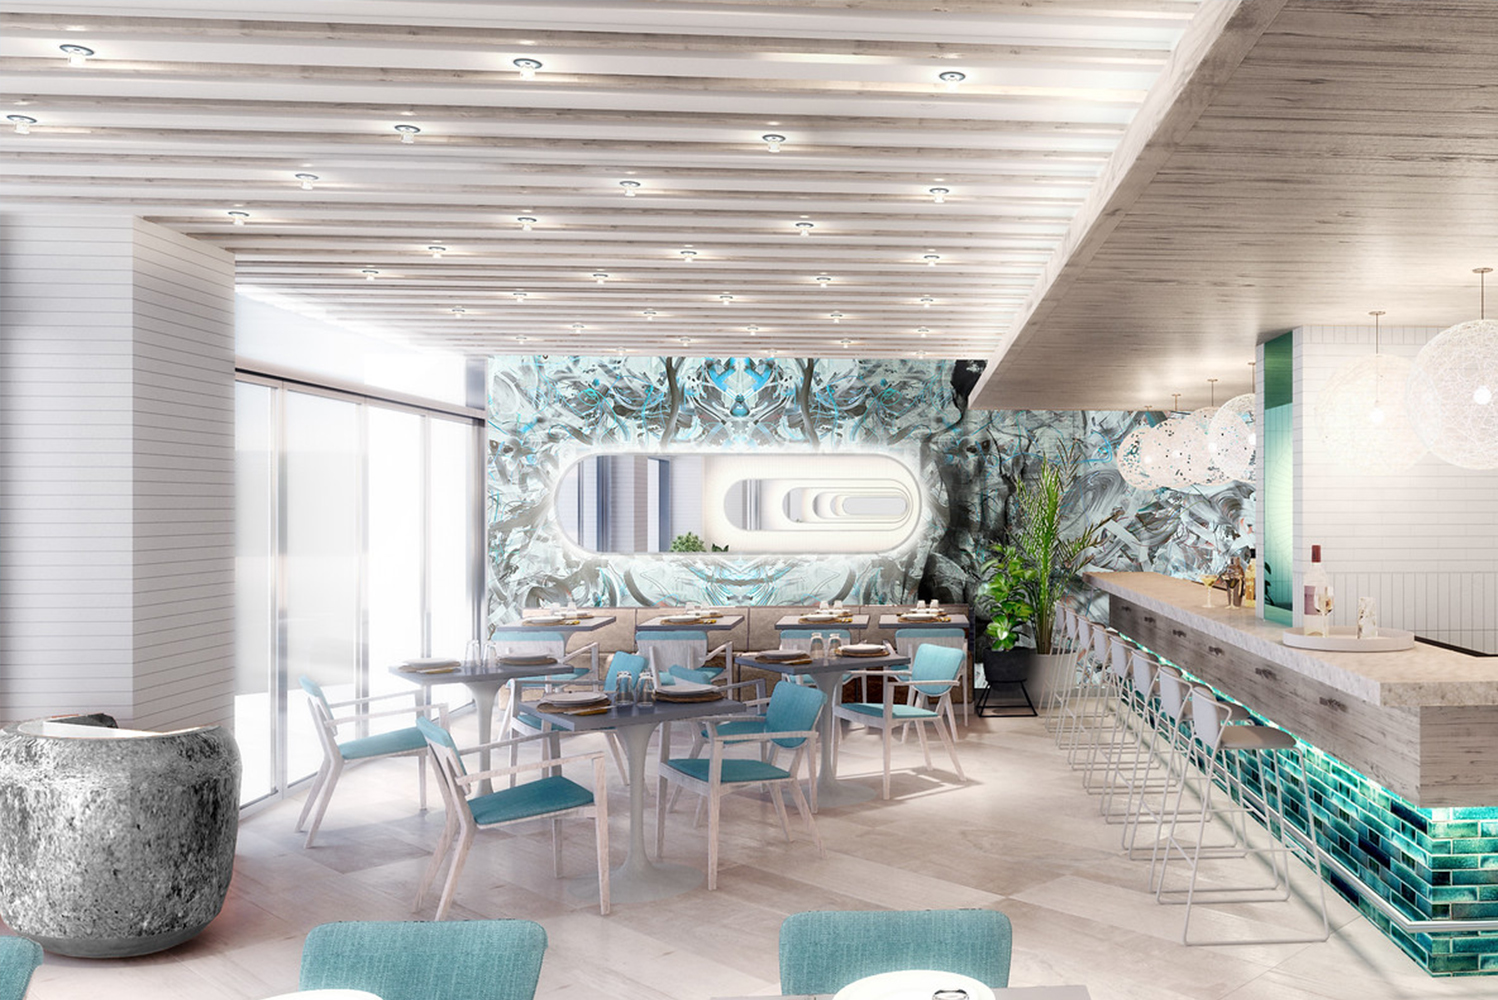 New dining concepts introduced by the Serafina Restaurant Group will include aMare, a modern take on traditional Italian seafood influenced by Puerto Rican flavors.